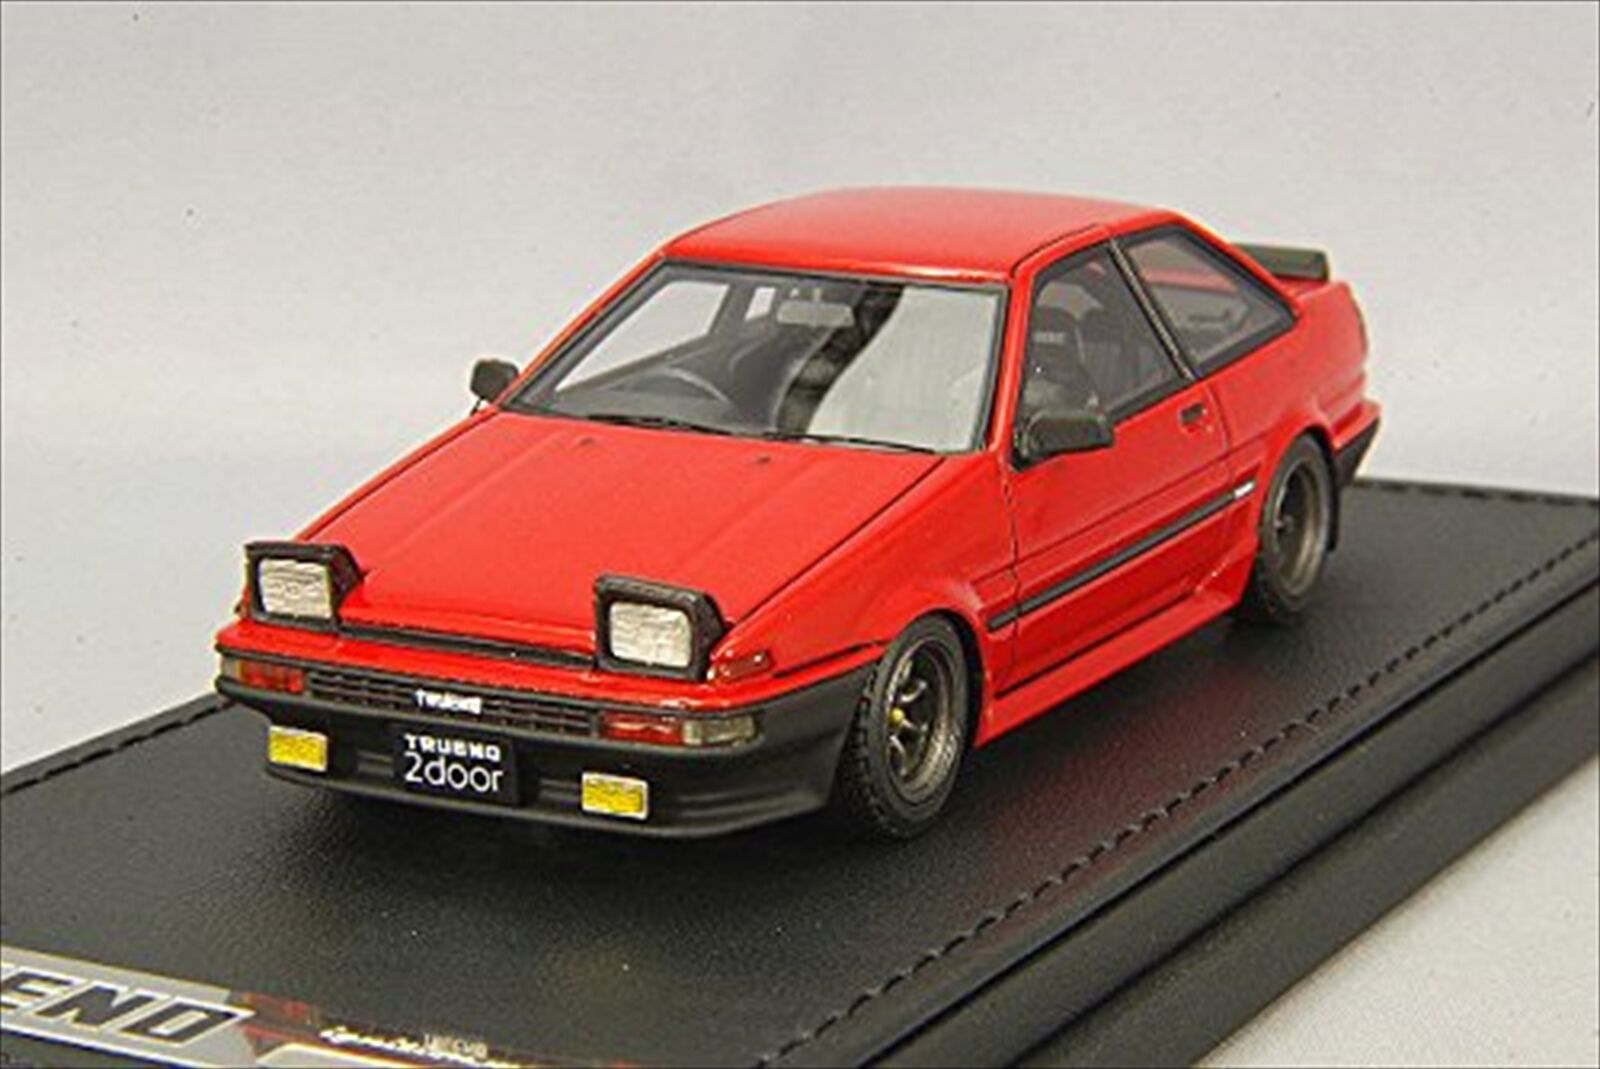 ignition model 1/43 Toyota Sprinter Trueno AE86 2Door GTV Red IG0482